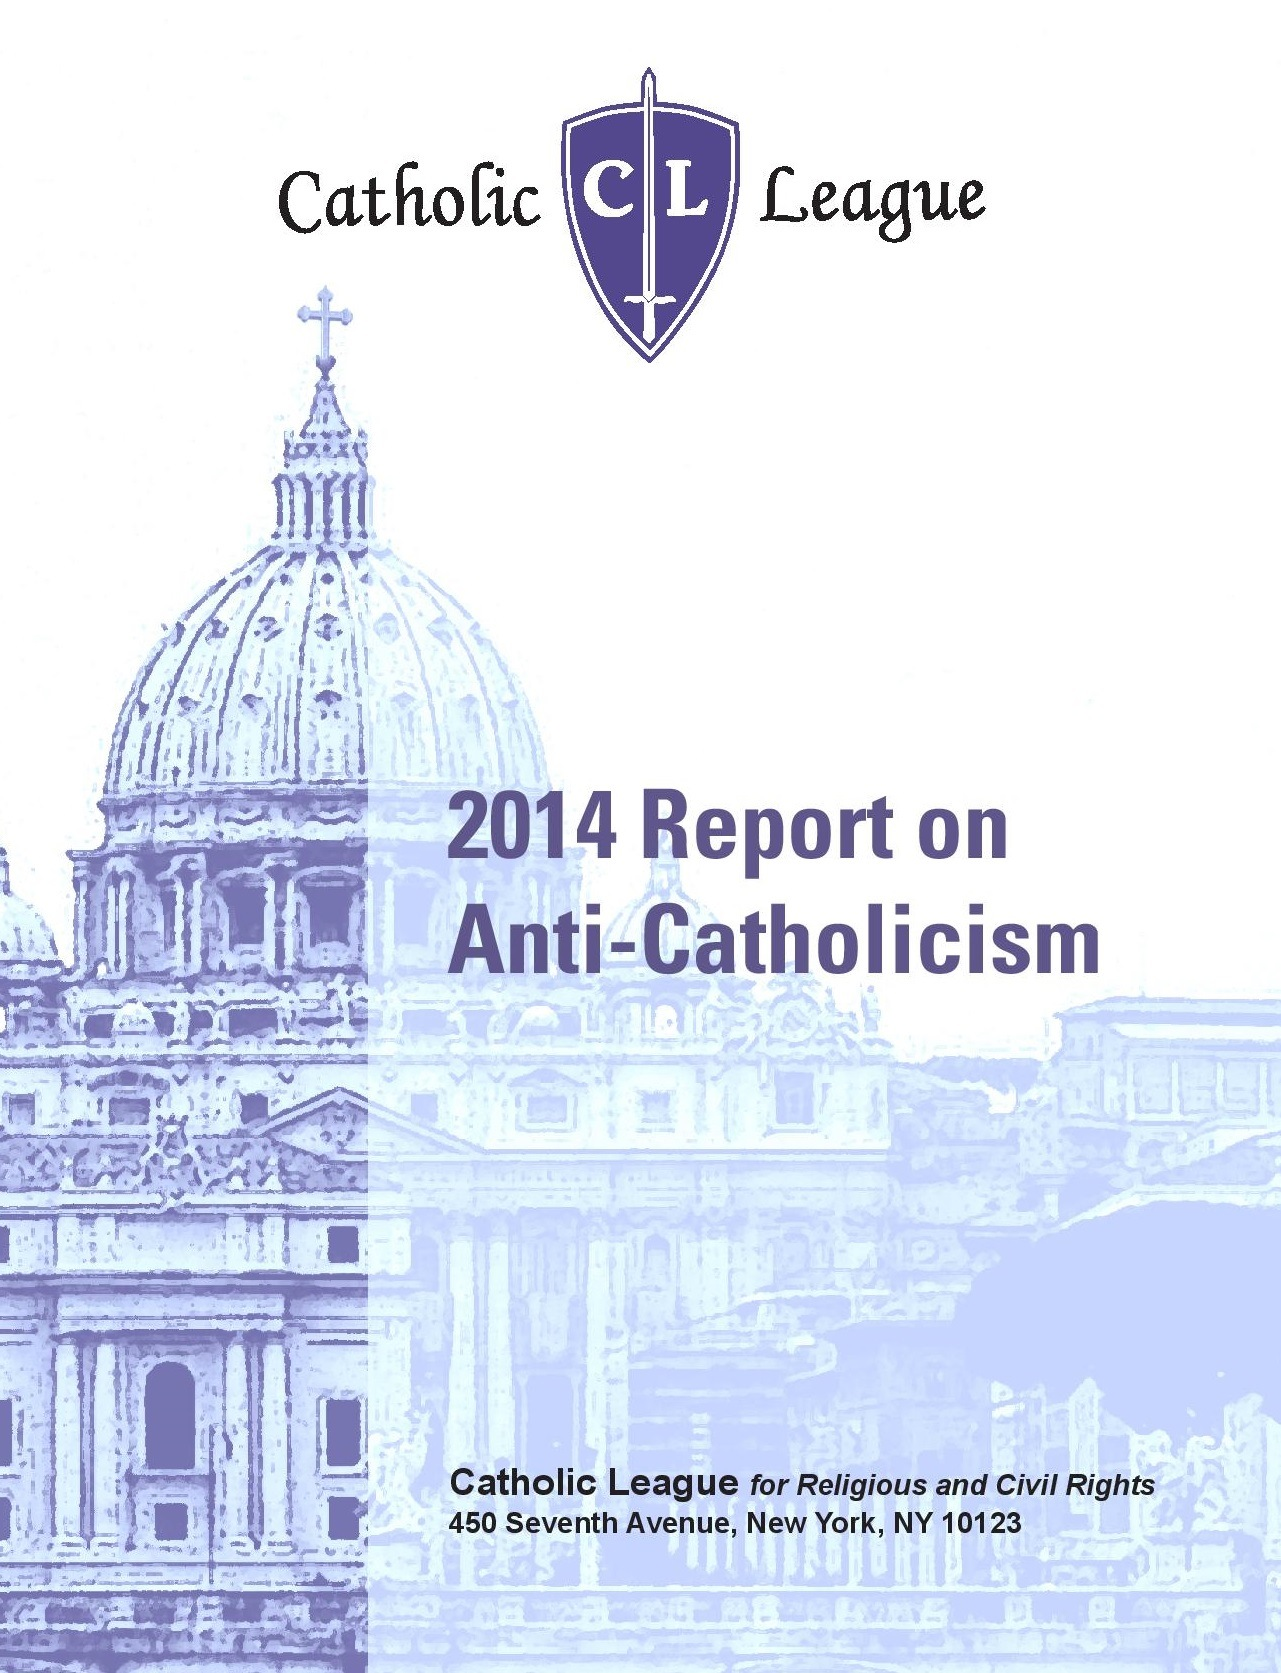 Catholic League's 2014 Report on Anti-Catholicism